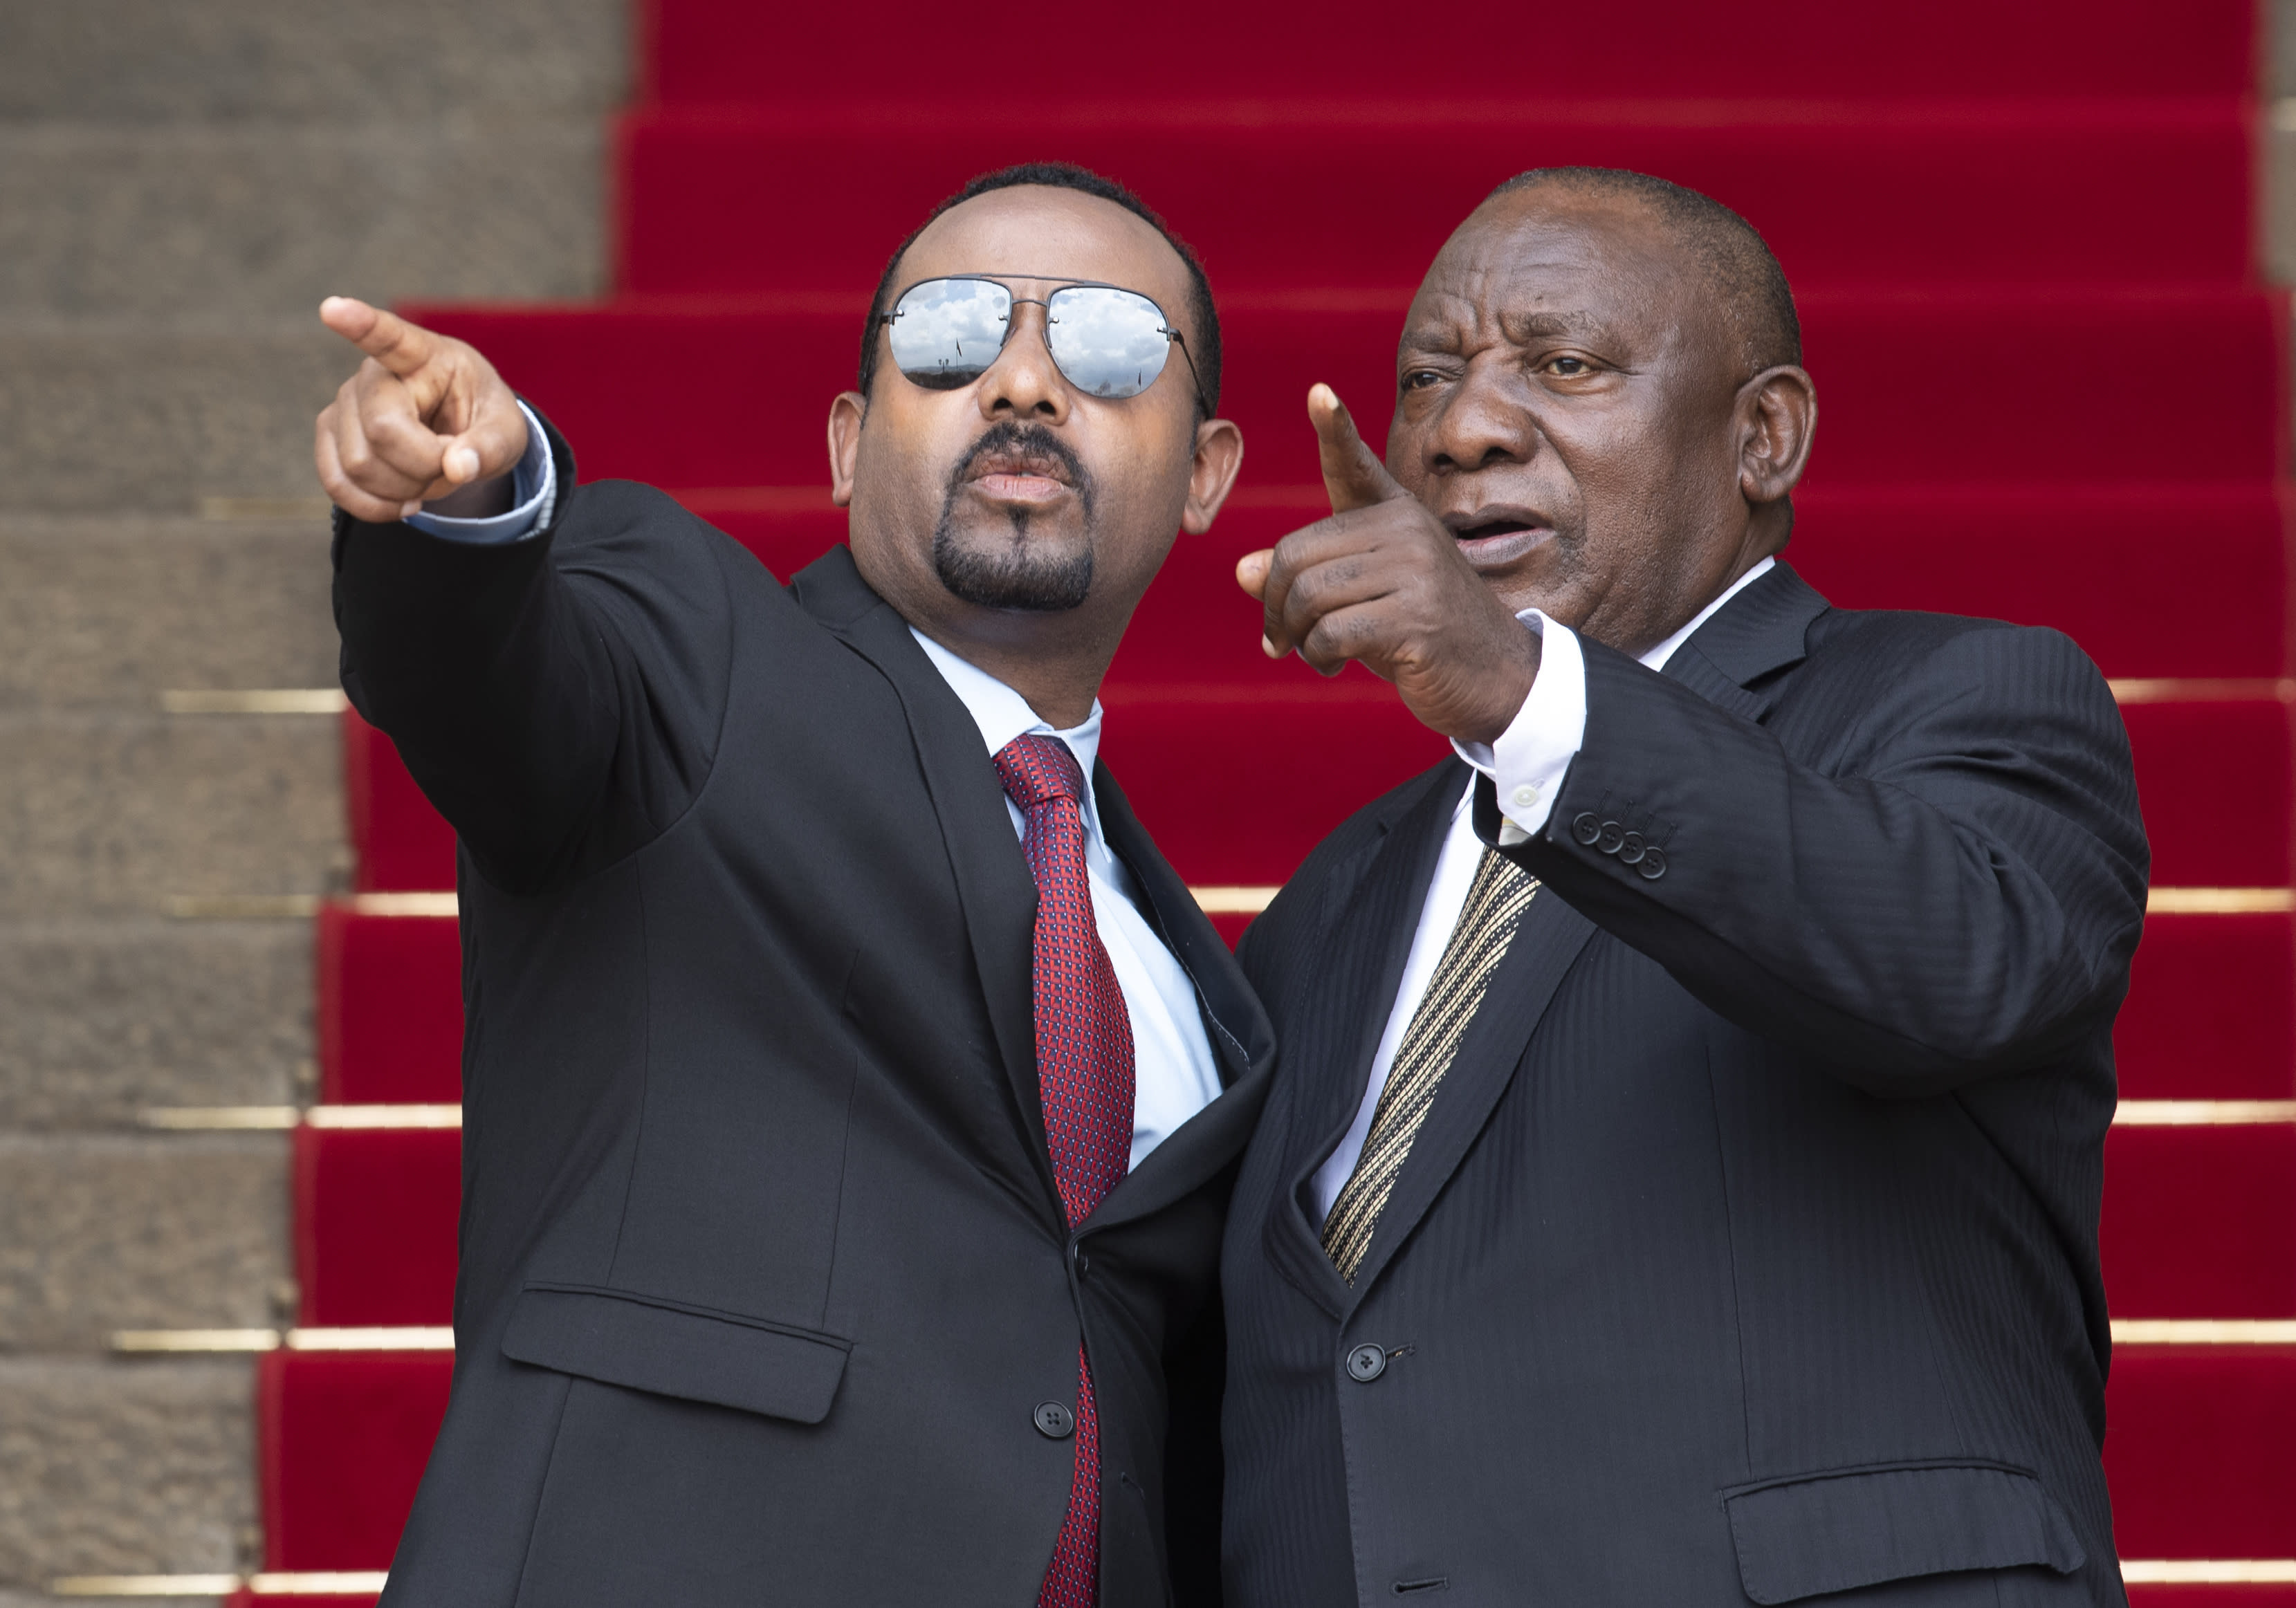 South African President Cyril Ramaphosa, left, with Ethiopia's Prime Minister Abiy Ahmed gestures as they pose for a photo prior to their talks at the Union Building in Pretoria, South Africa, Sunday, Jan. 12, 2020. (AP Photo/Themba Hadebe)